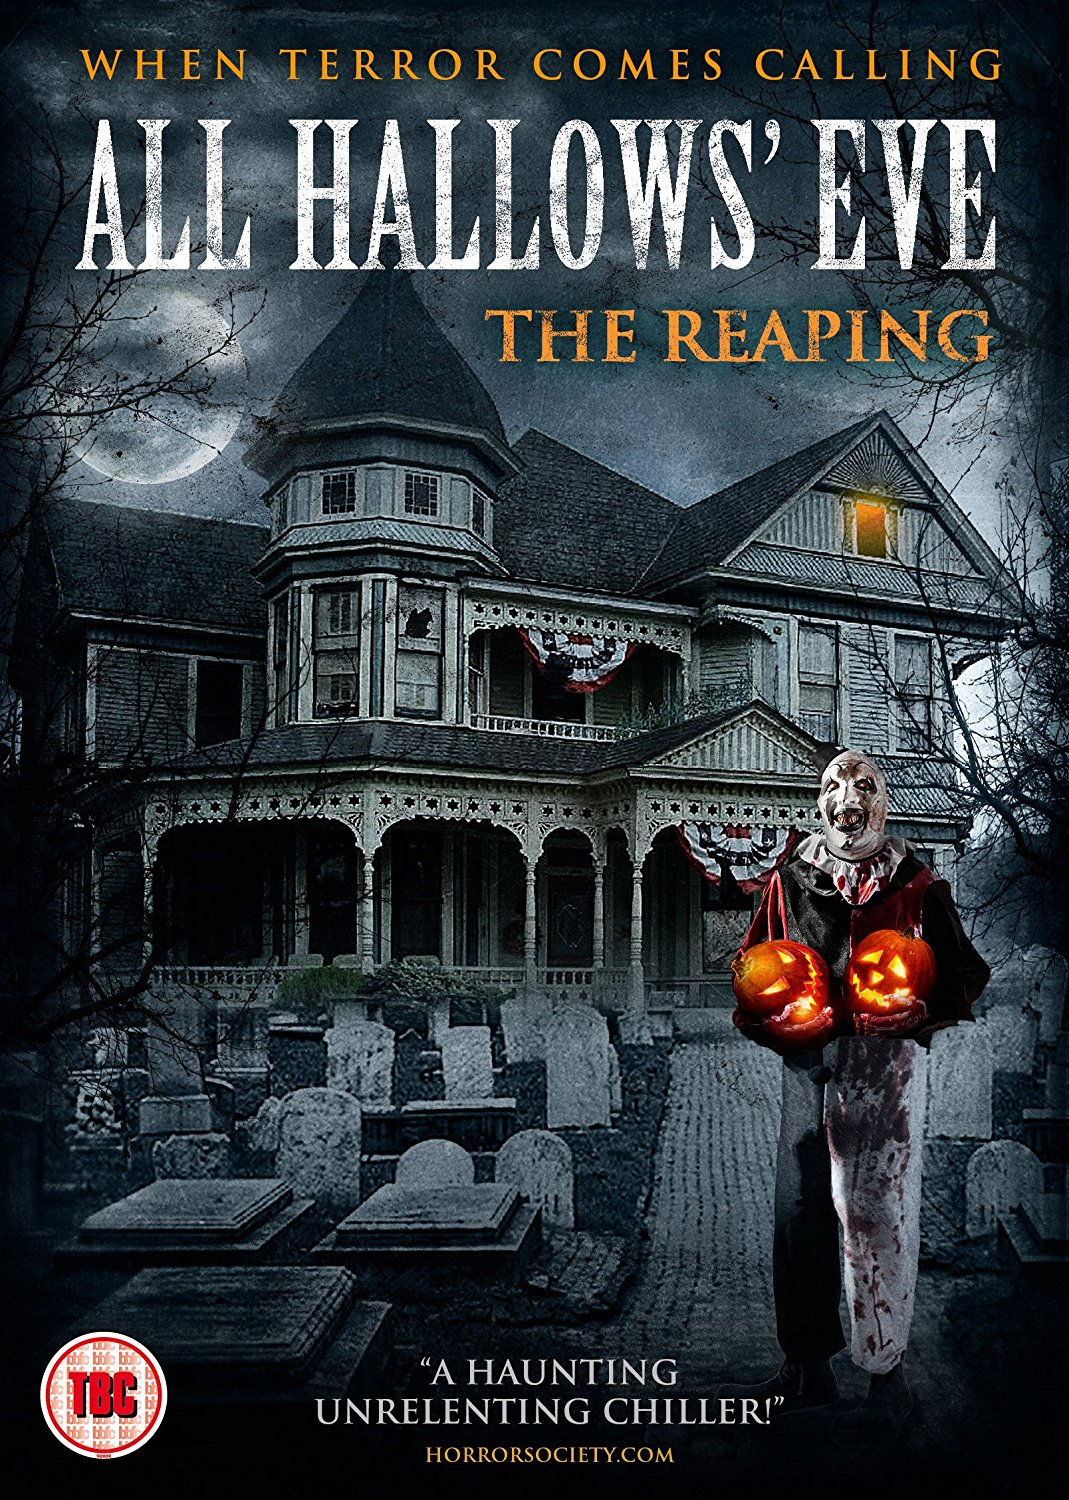 All Hallows Staining: New DVD And Blu-Ray (UK) Horror Releases For: October 24th